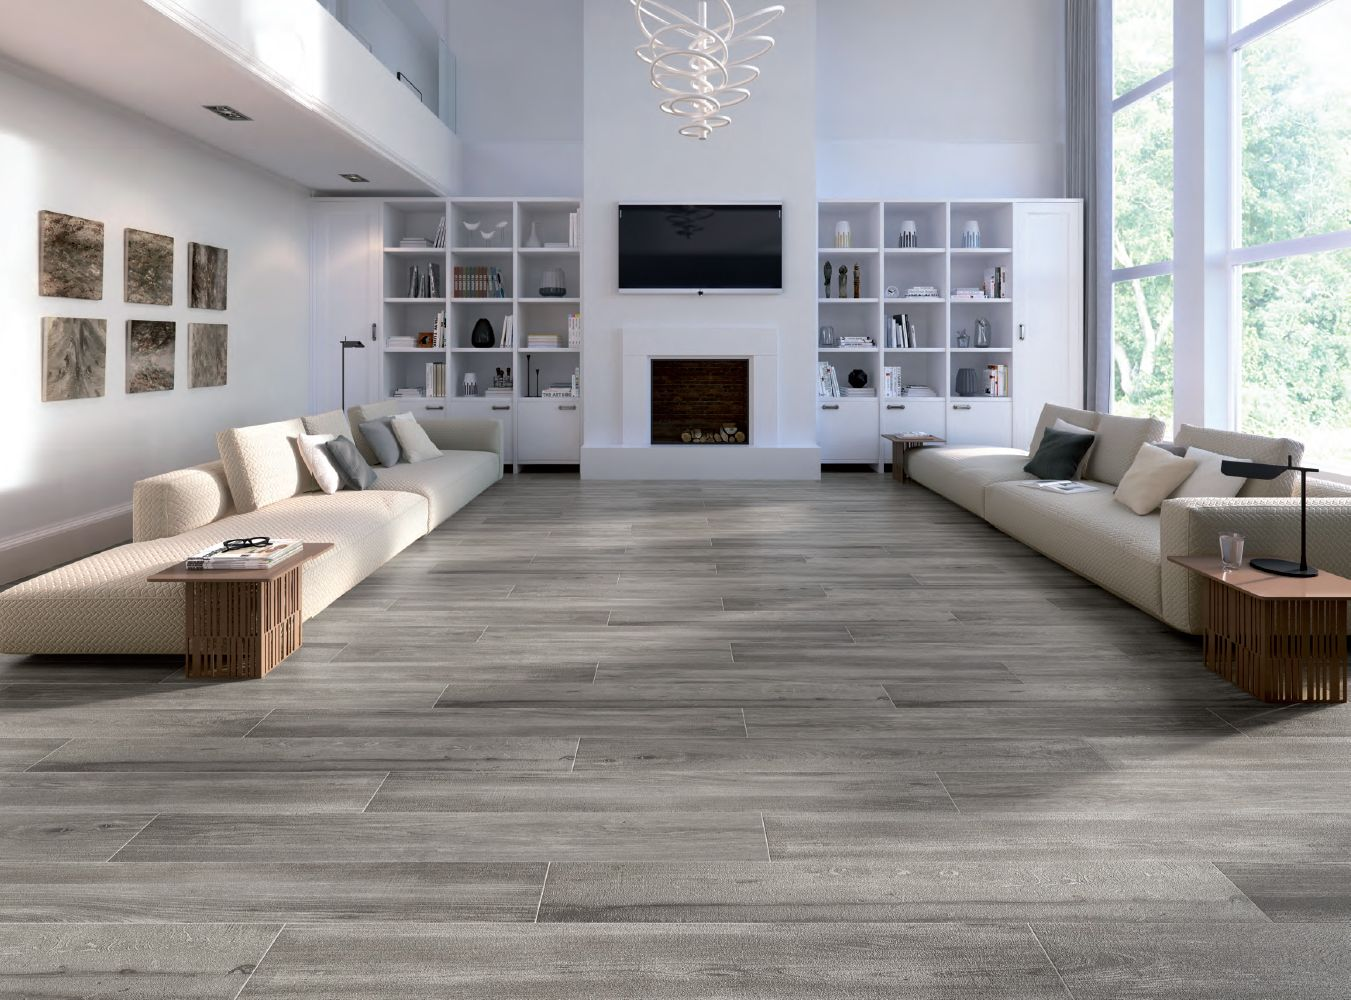 Pin On Chateau Wood Look Tiles